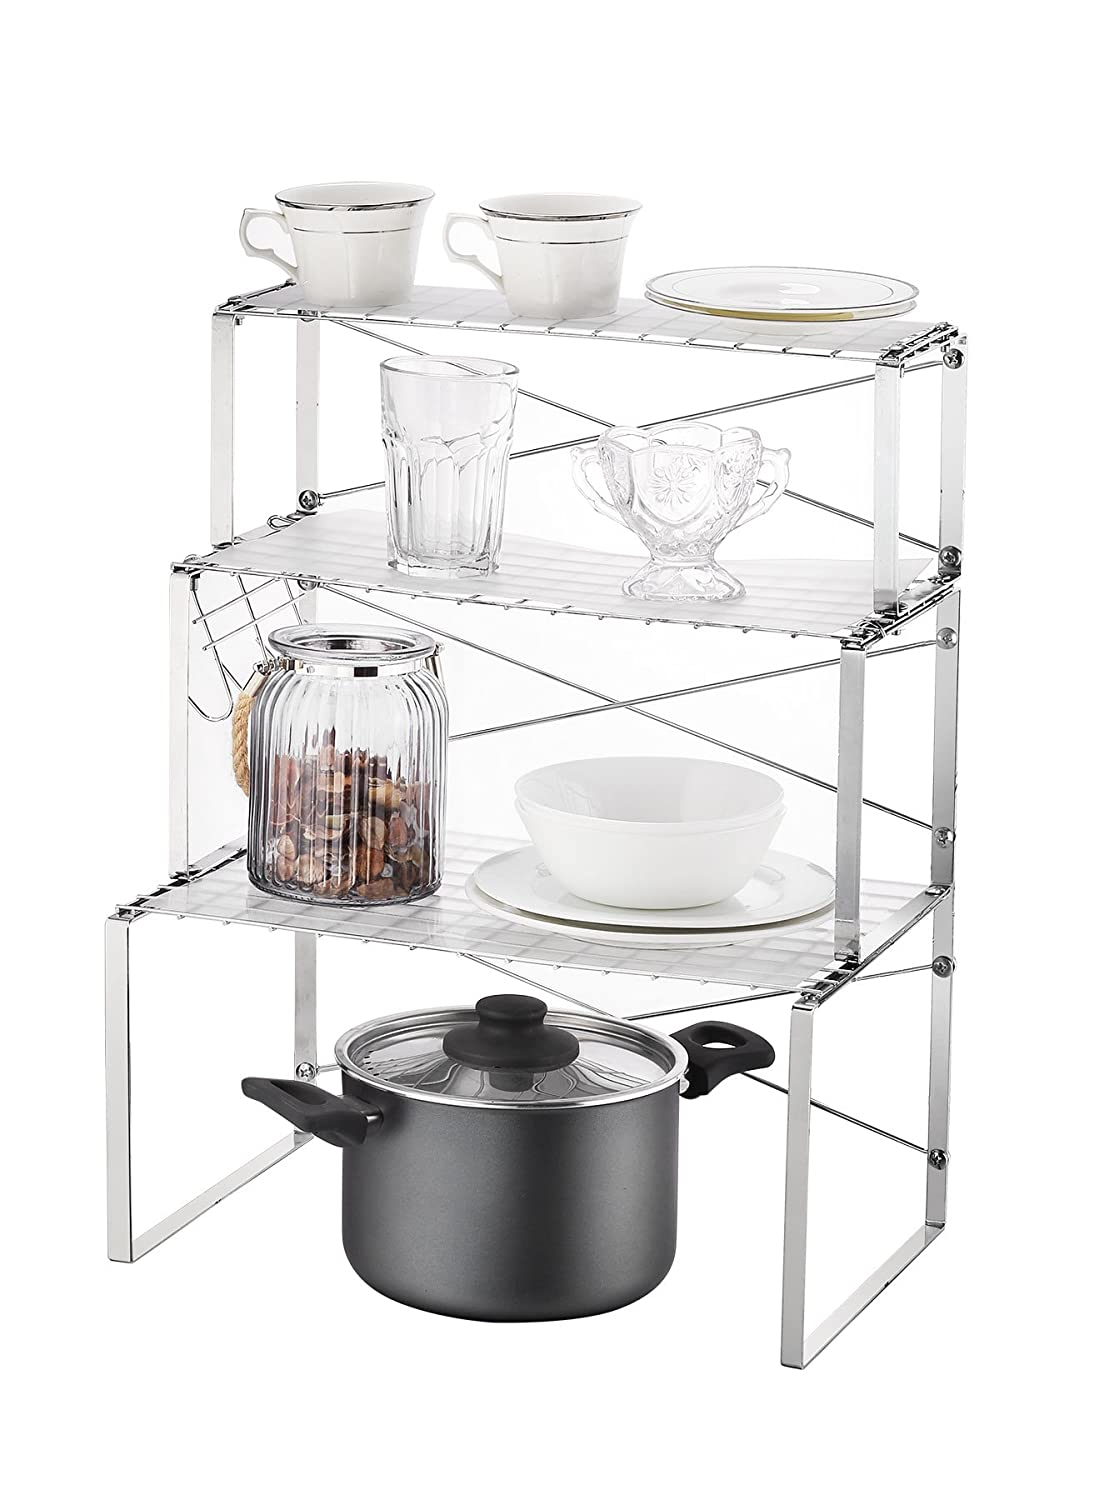 NEUN WELTEN Multi-use 3 Tier Kitchen Cabinet and Counter Shelves Storage  Organizer Rack with Hooks and Shelf Liner (Silver)